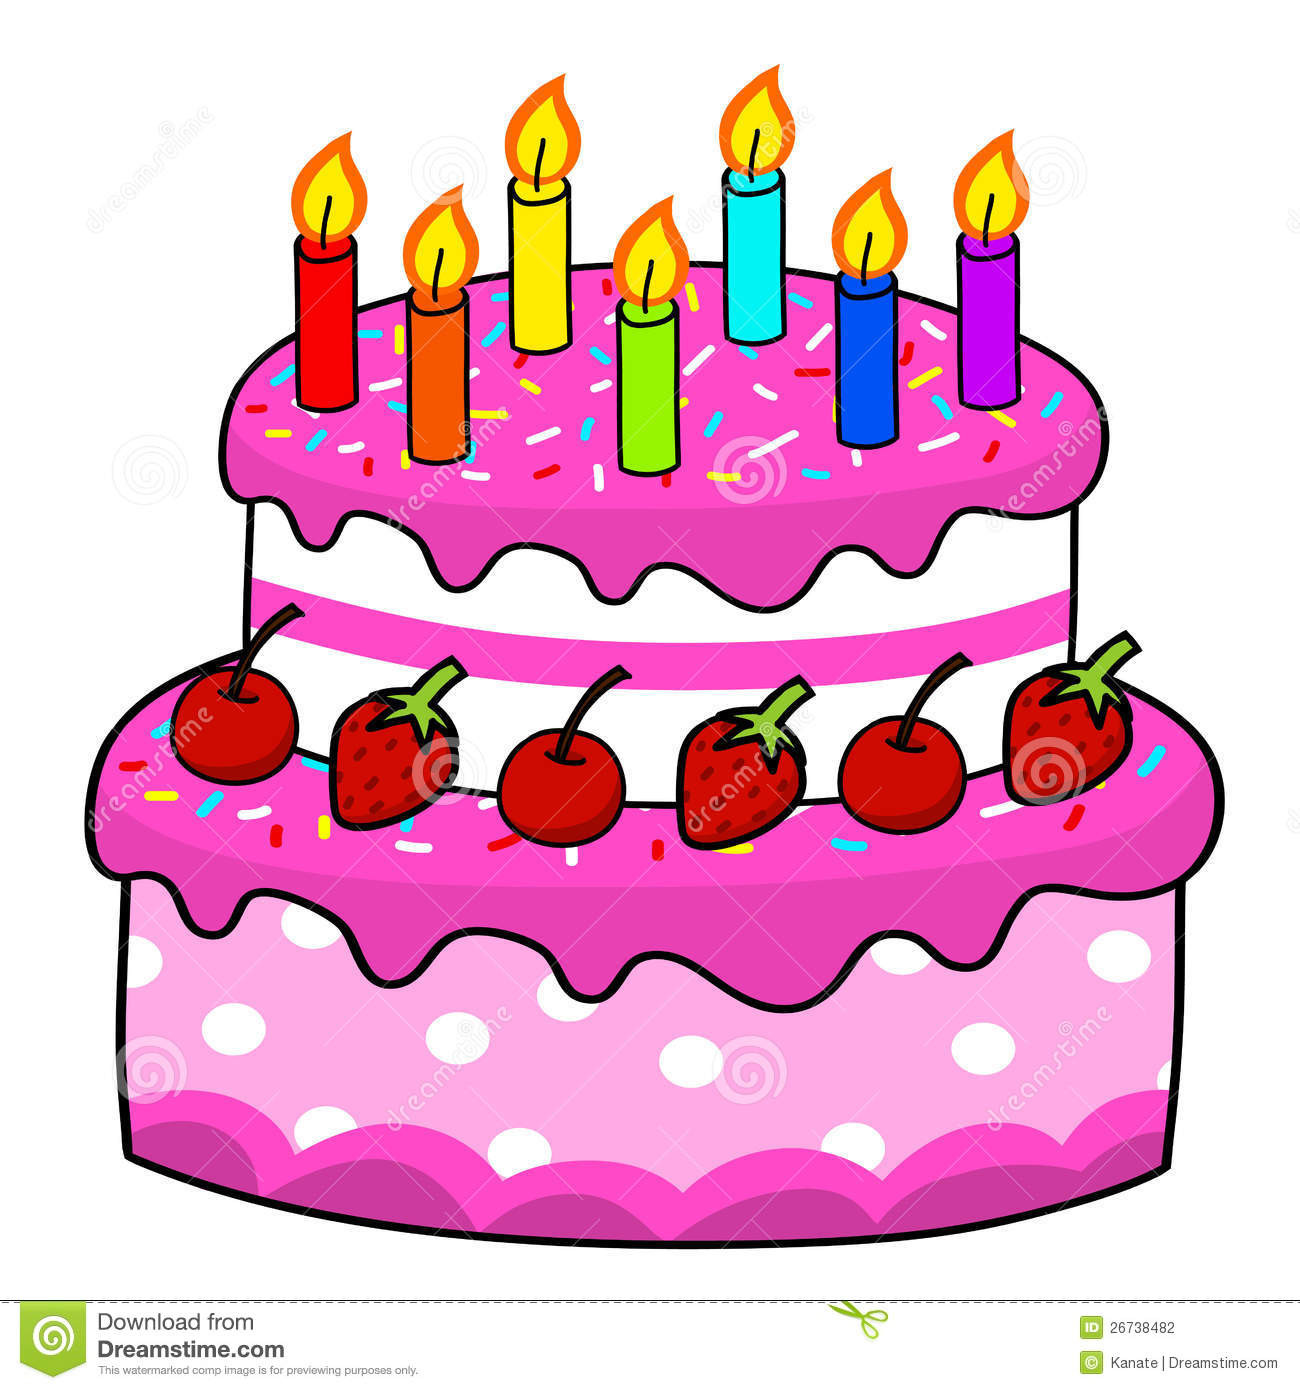 Best ideas about Cartoon Birthday Cake . Save or Pin Cartoon cake hand drawing stock vector Illustration of Now.